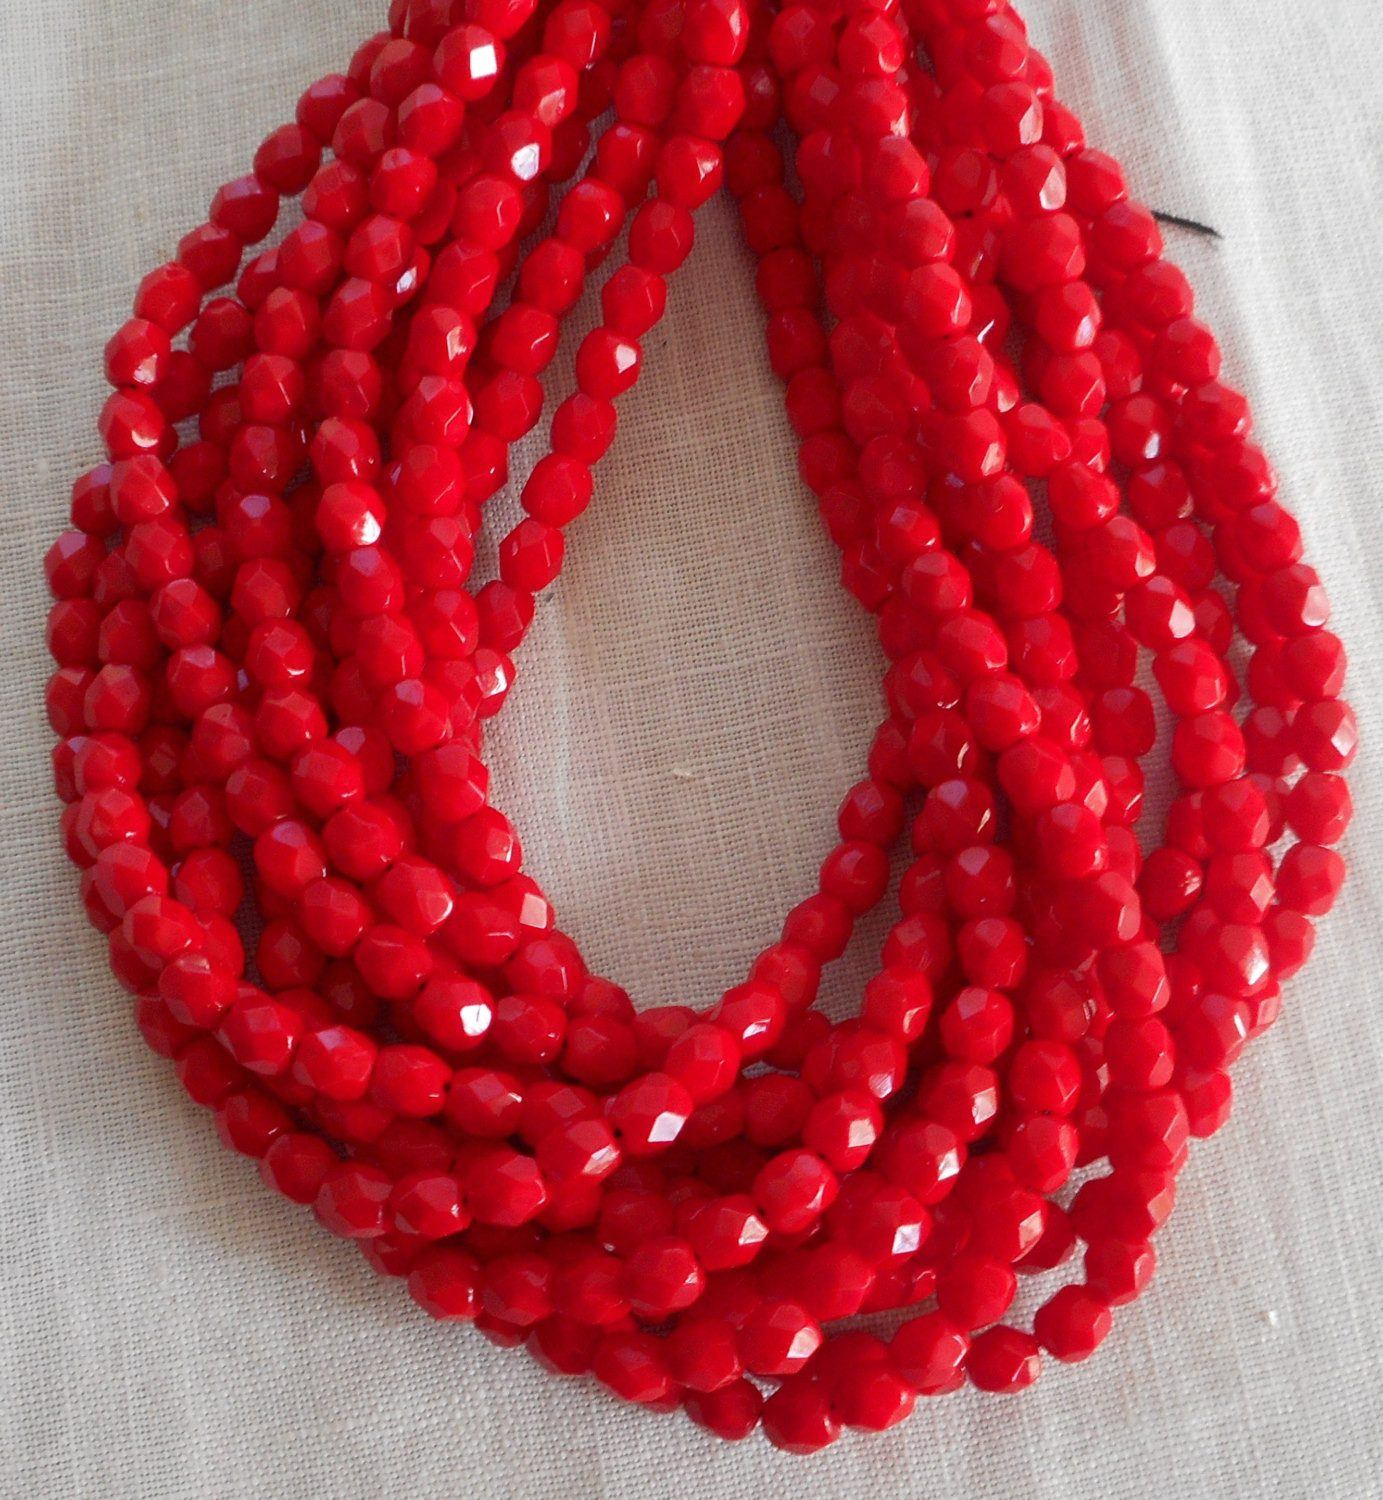 red jewelry mix making beads market etsy il supplies glass for loose